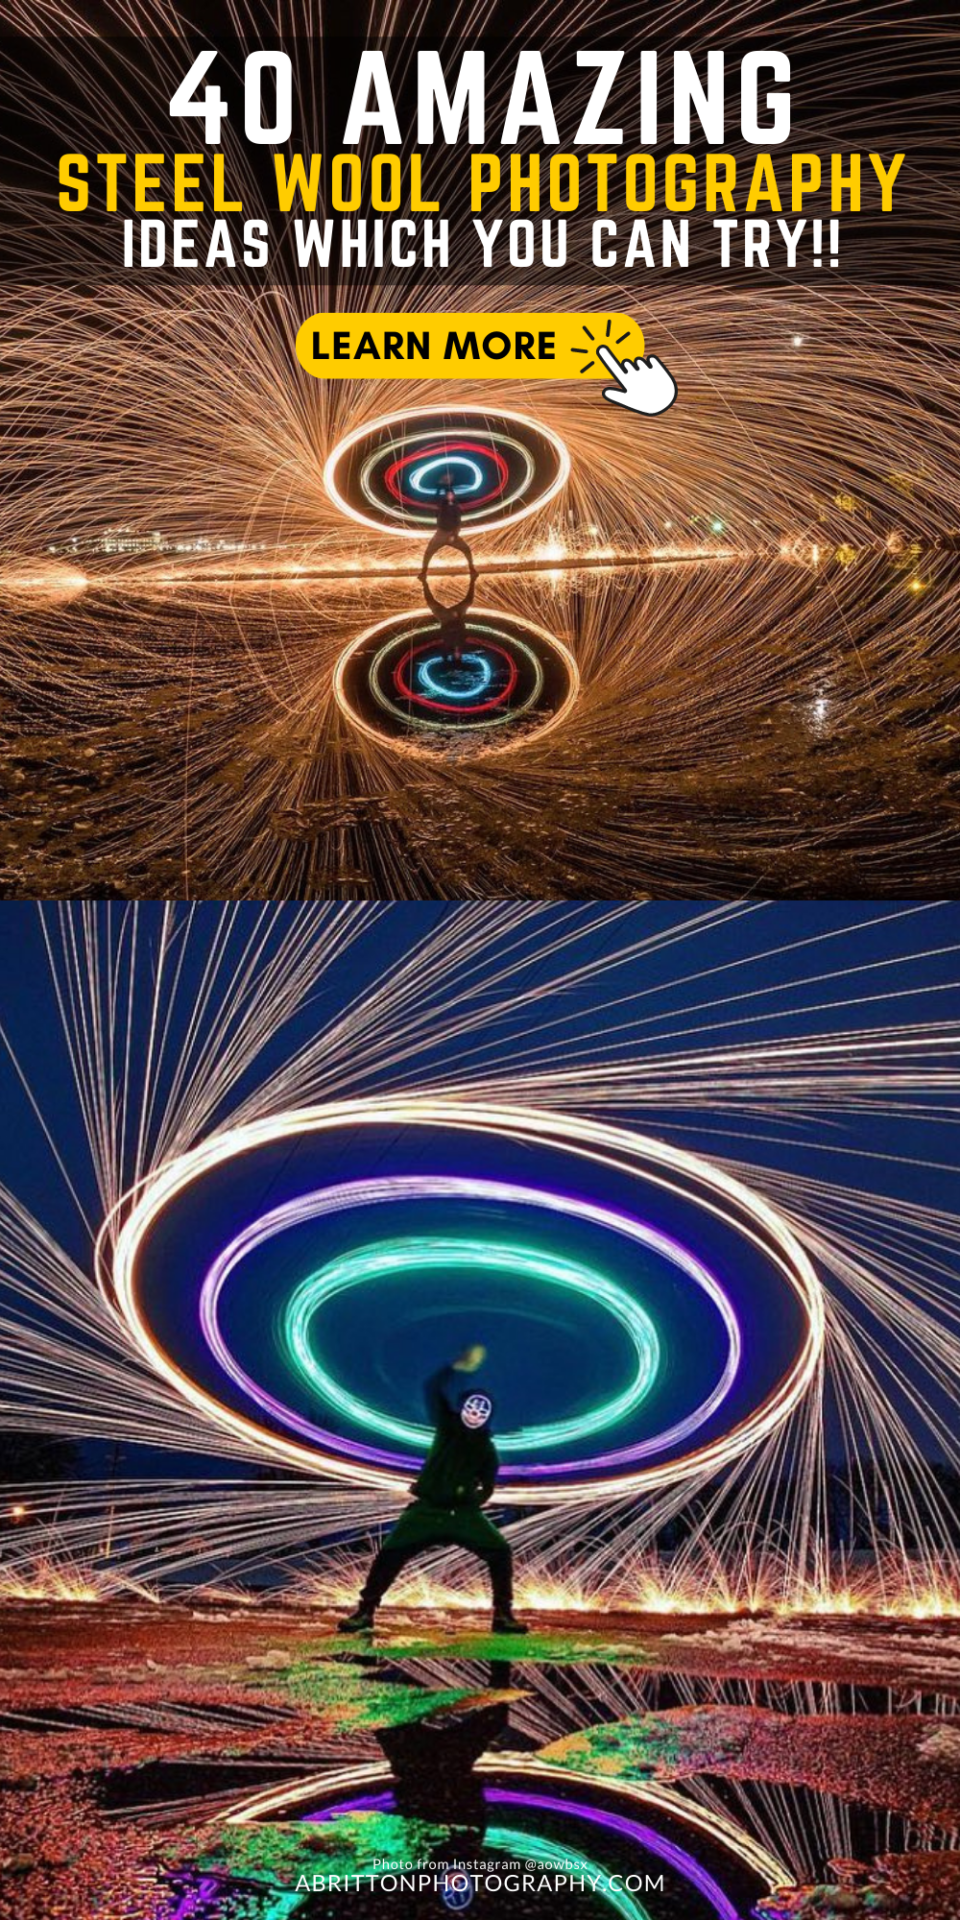 steel wool photography ideas